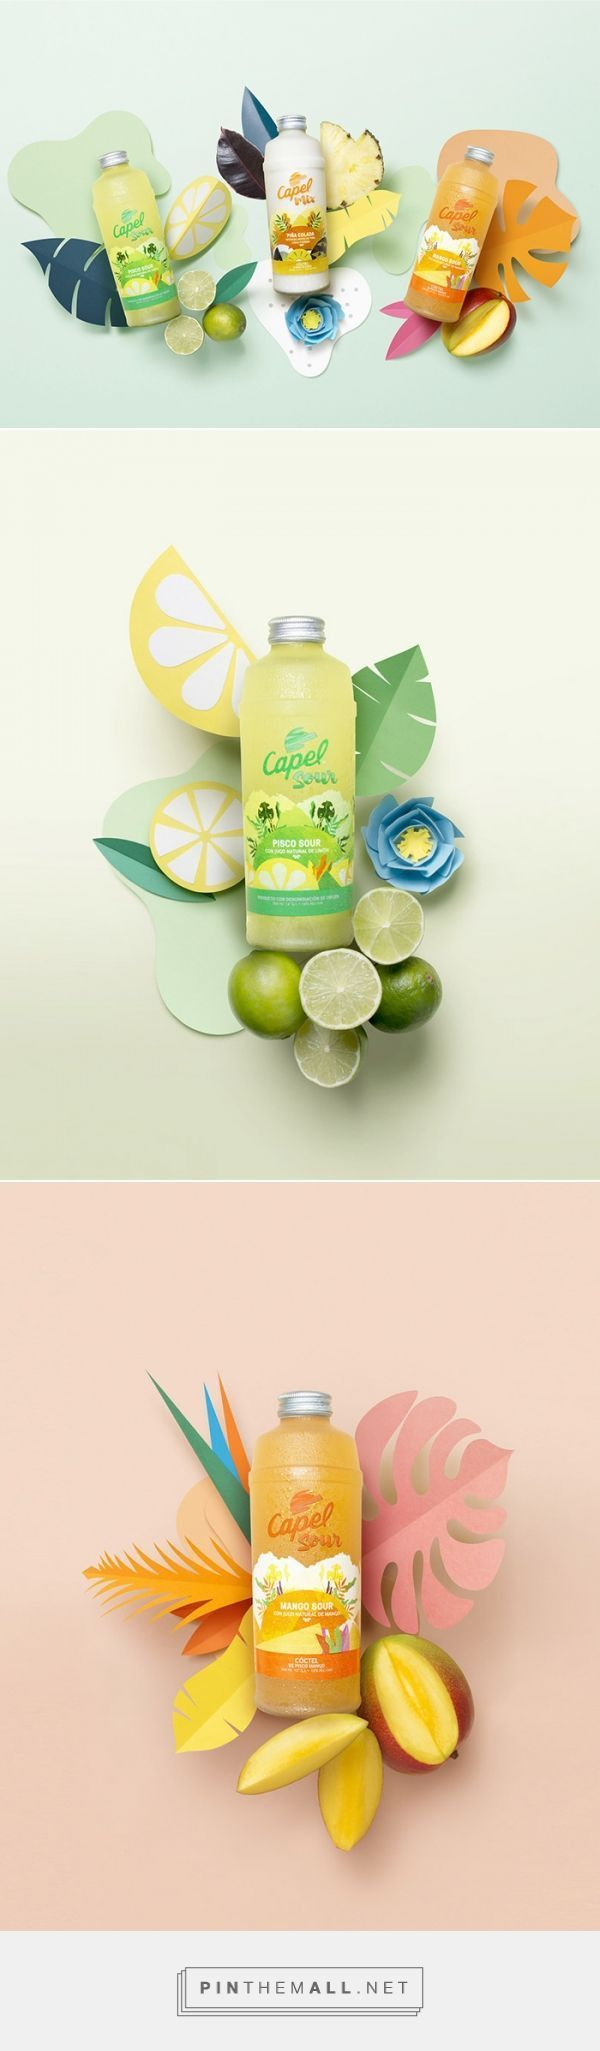 Capel Sour juices by Estudio Cielo. Source: Daily Package Design Inspiration.